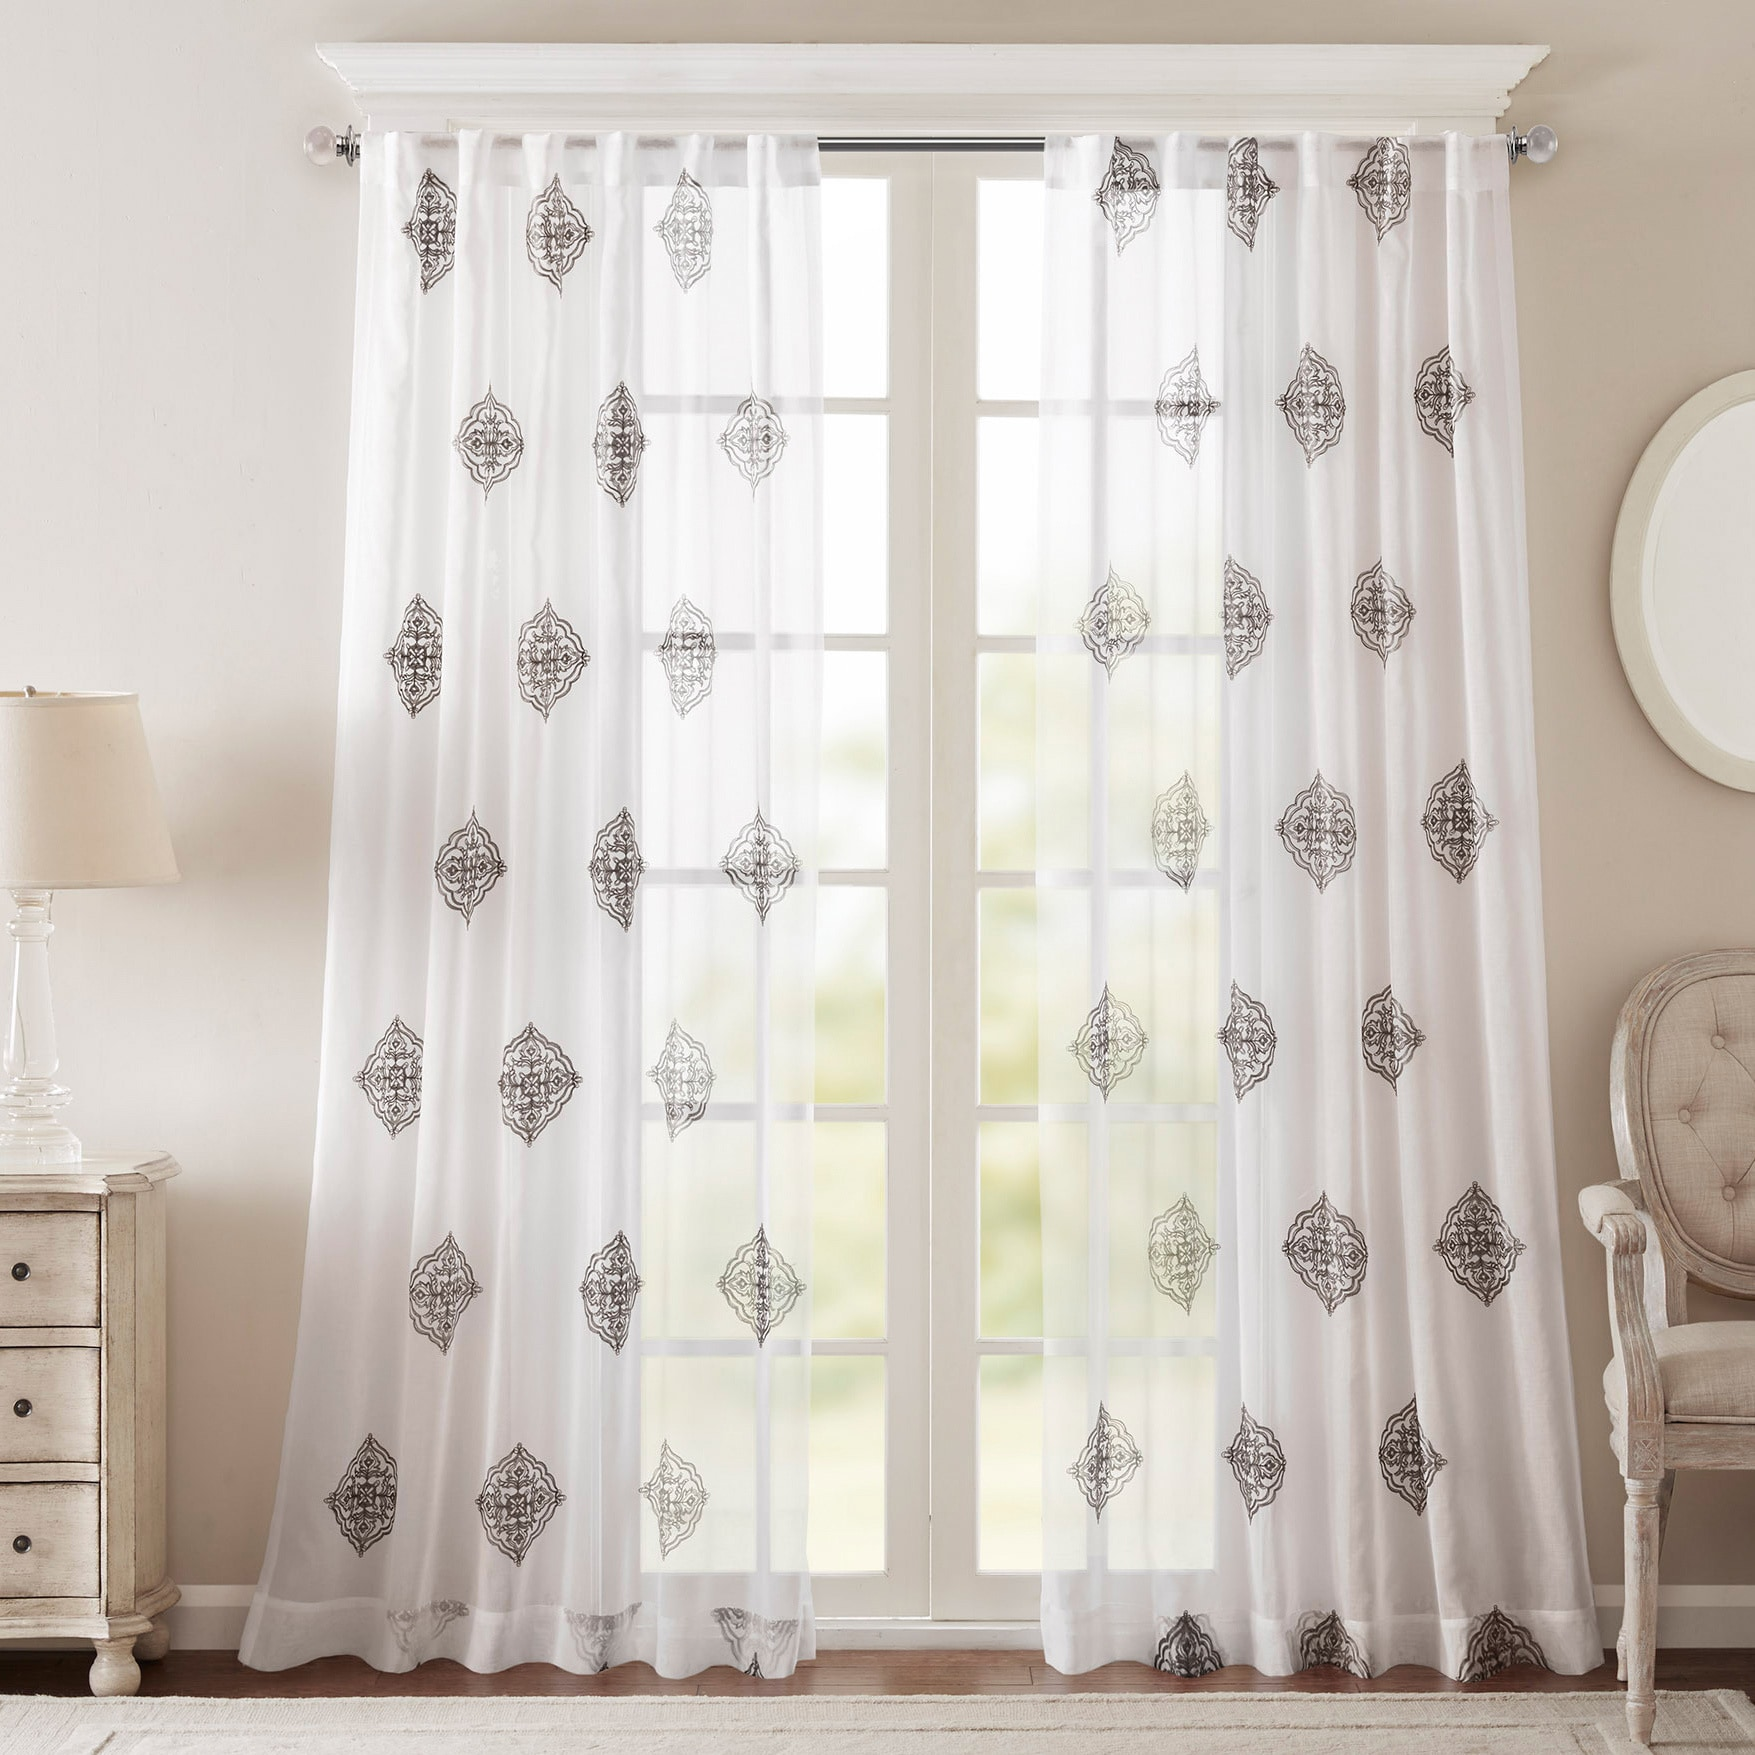 Bombay Massa Embroidered Sheer Window Curtain Panel - Free Shipping On  Orders Over $45 - Overstock.com - 18410748